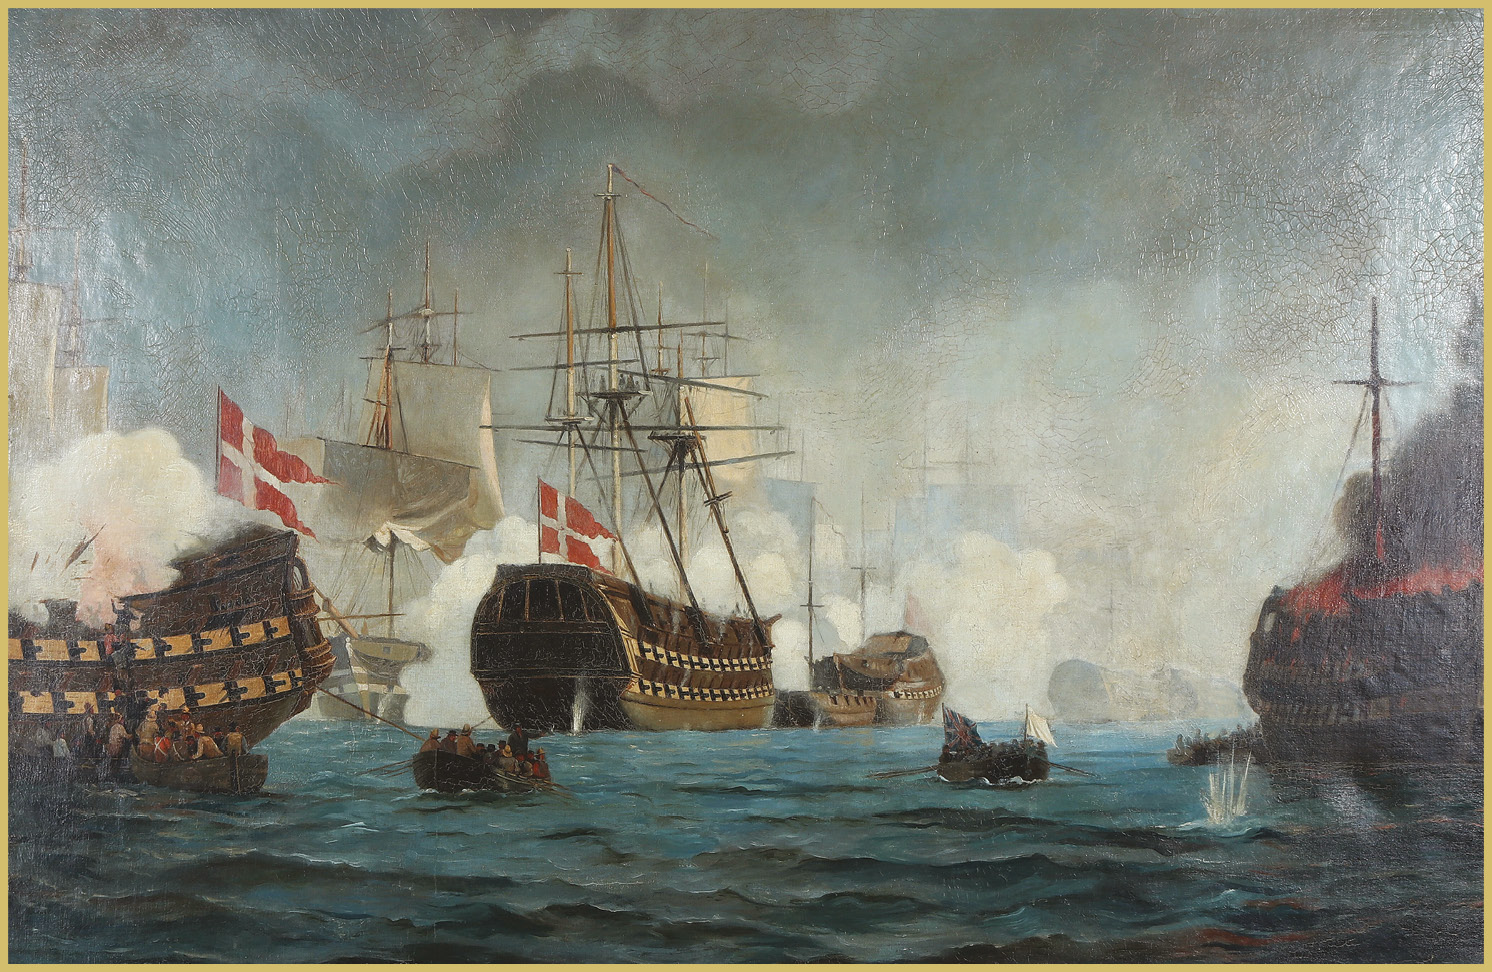 LEFT Nelson's preference for engagement at the closest possible range was again evident at Copenhagen, where the Danish fleet was neutralised and Napoleon's Baltic 'Armed Neutrality' broken up.